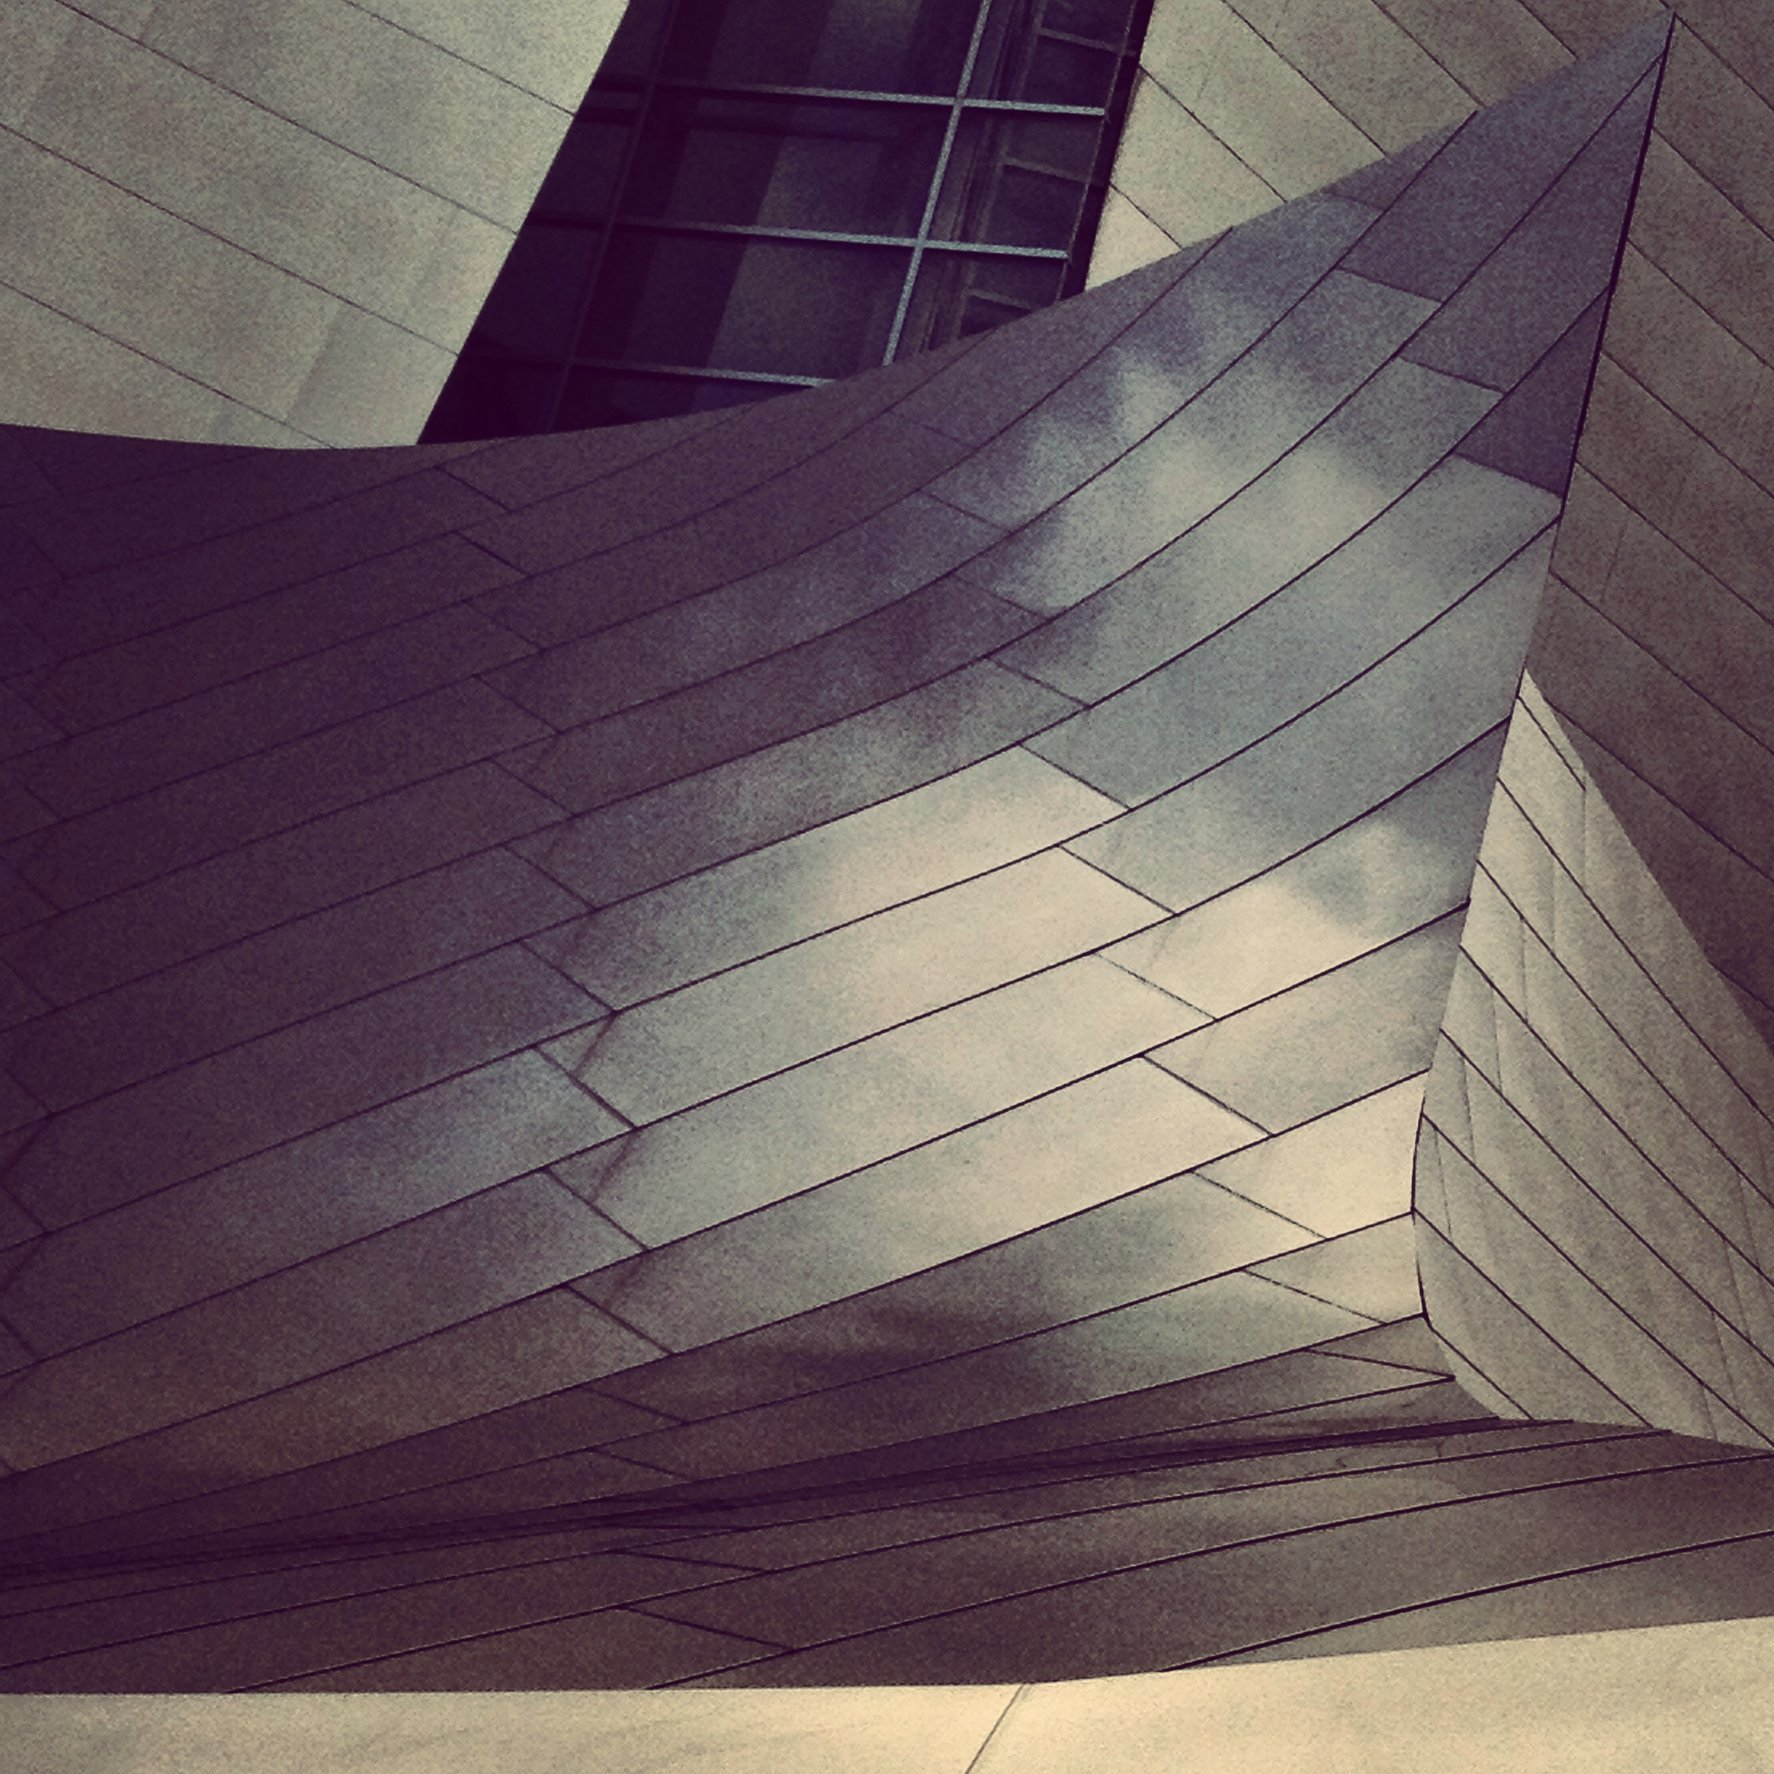 WALT DISNEY CONCERT HALL - B&W 6